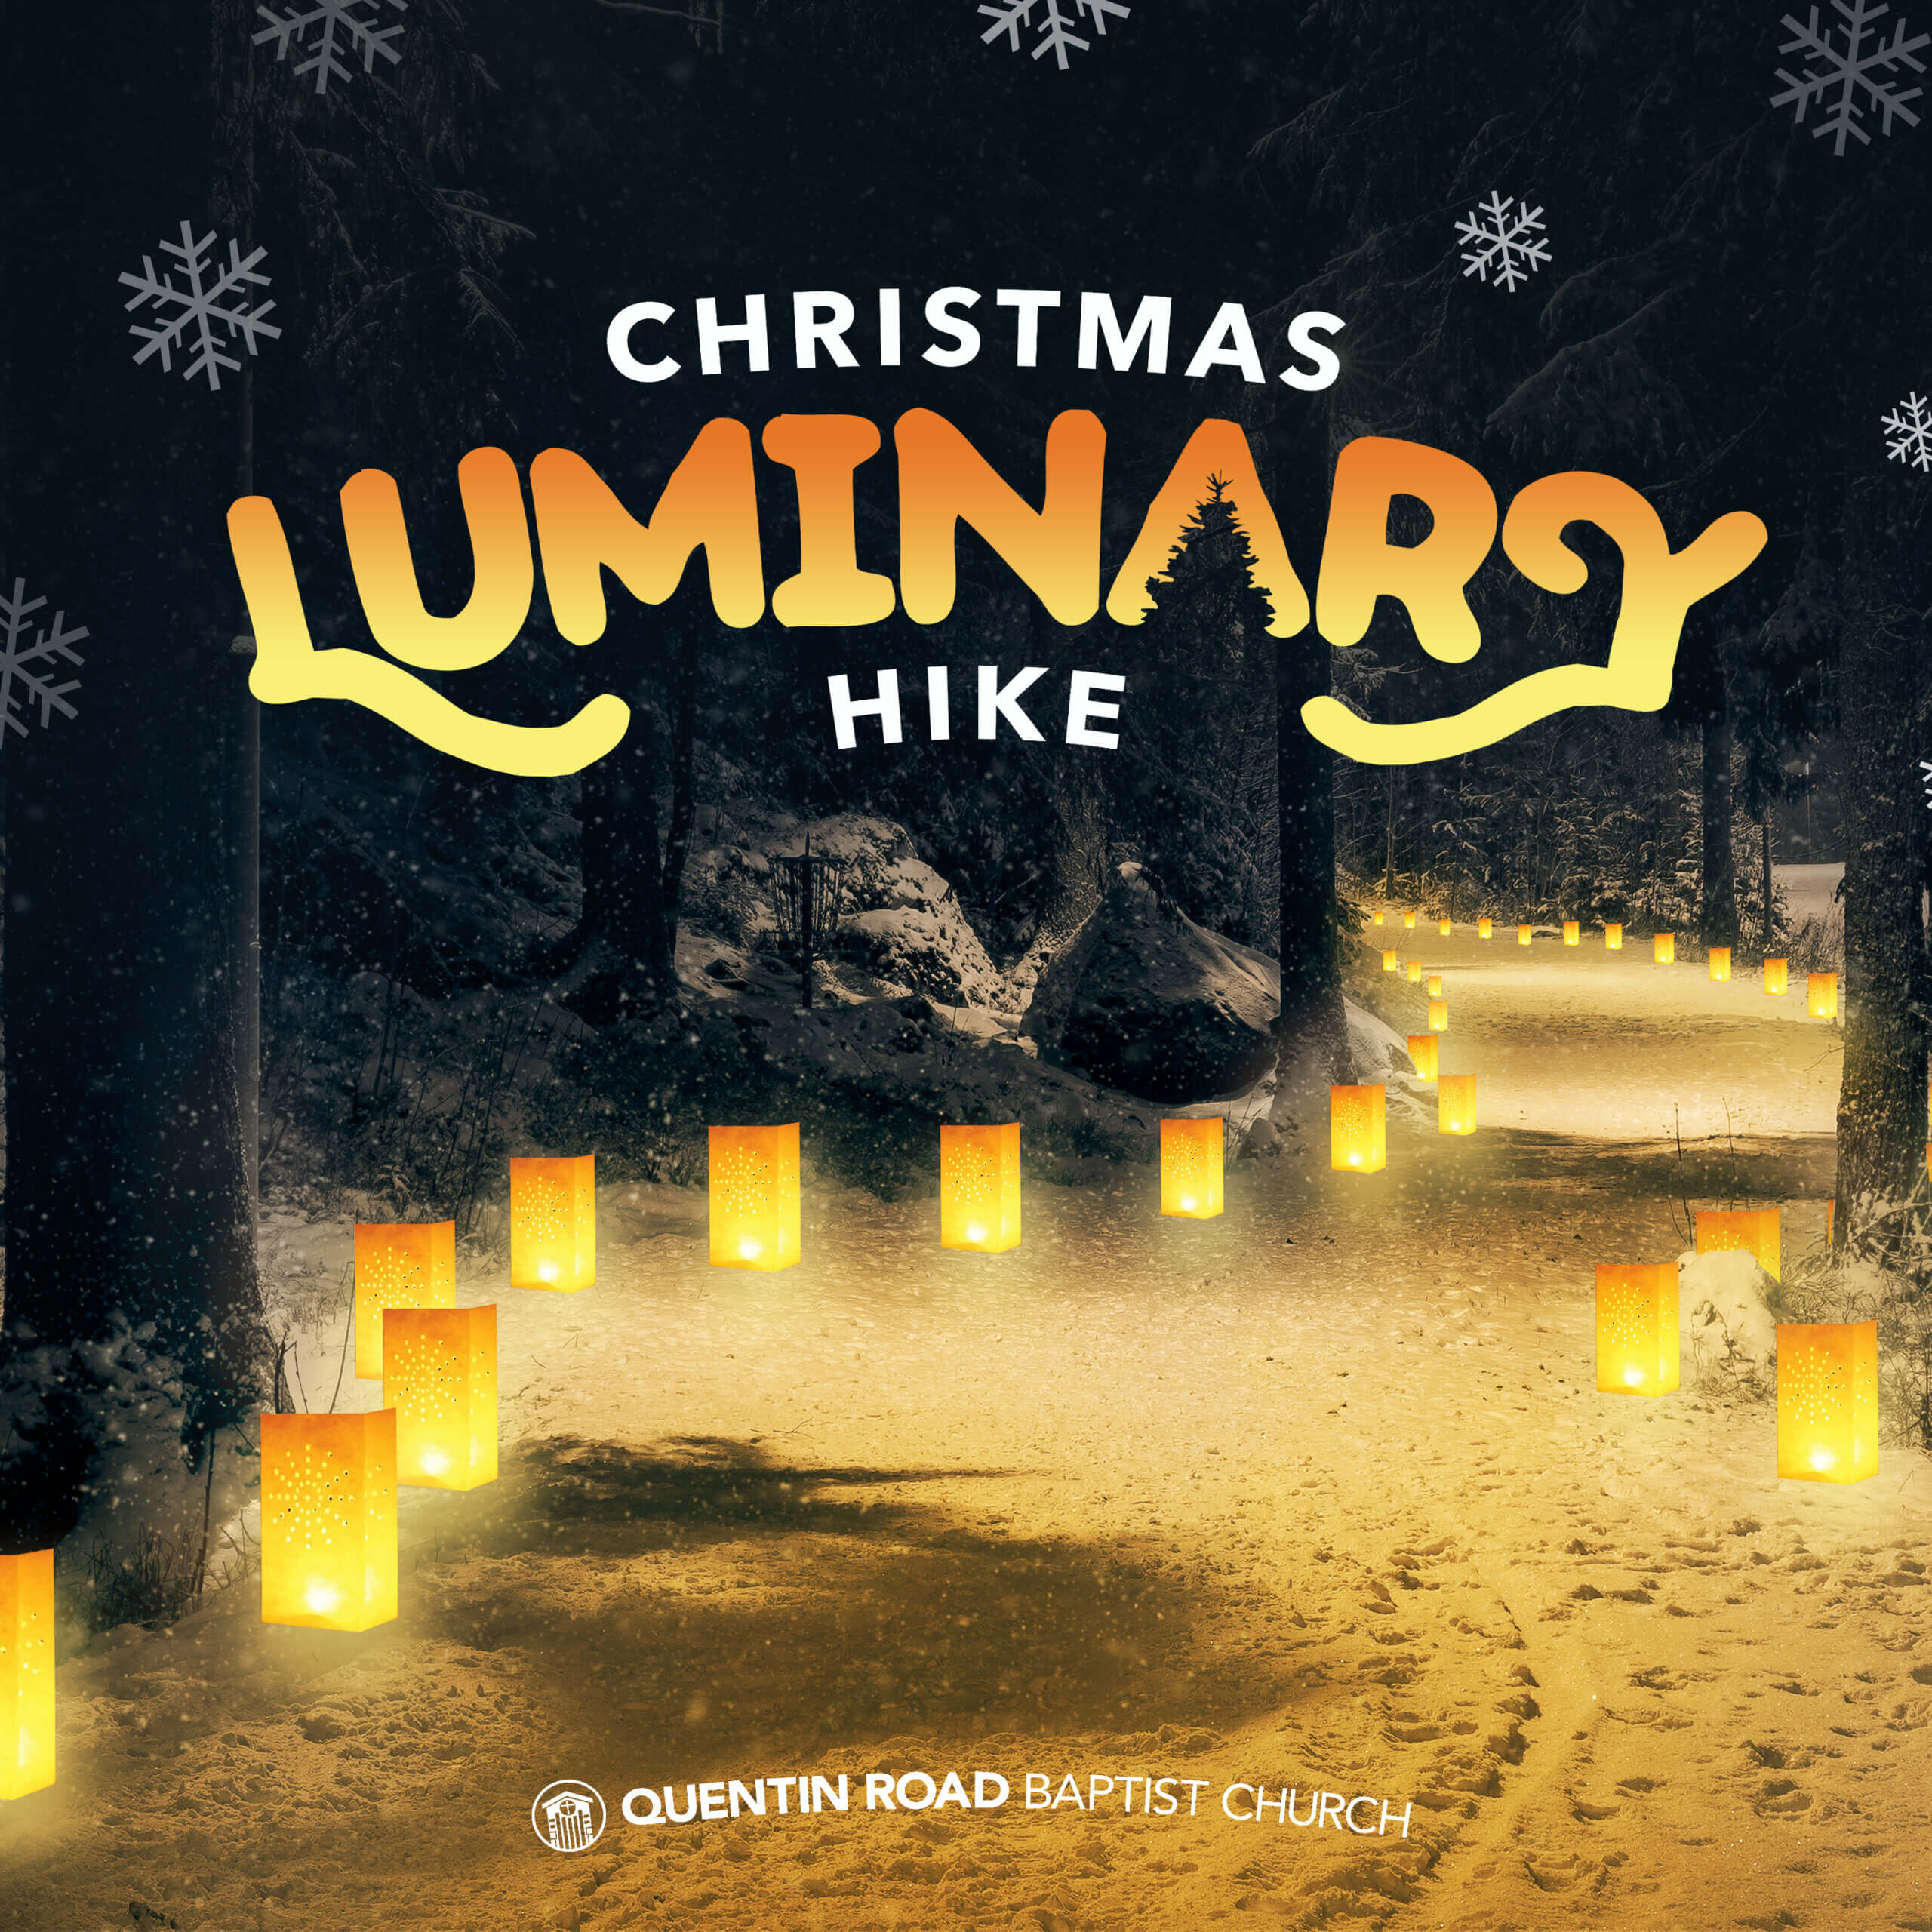 Quentin Road Baptist Church Christmas Luminary Hike